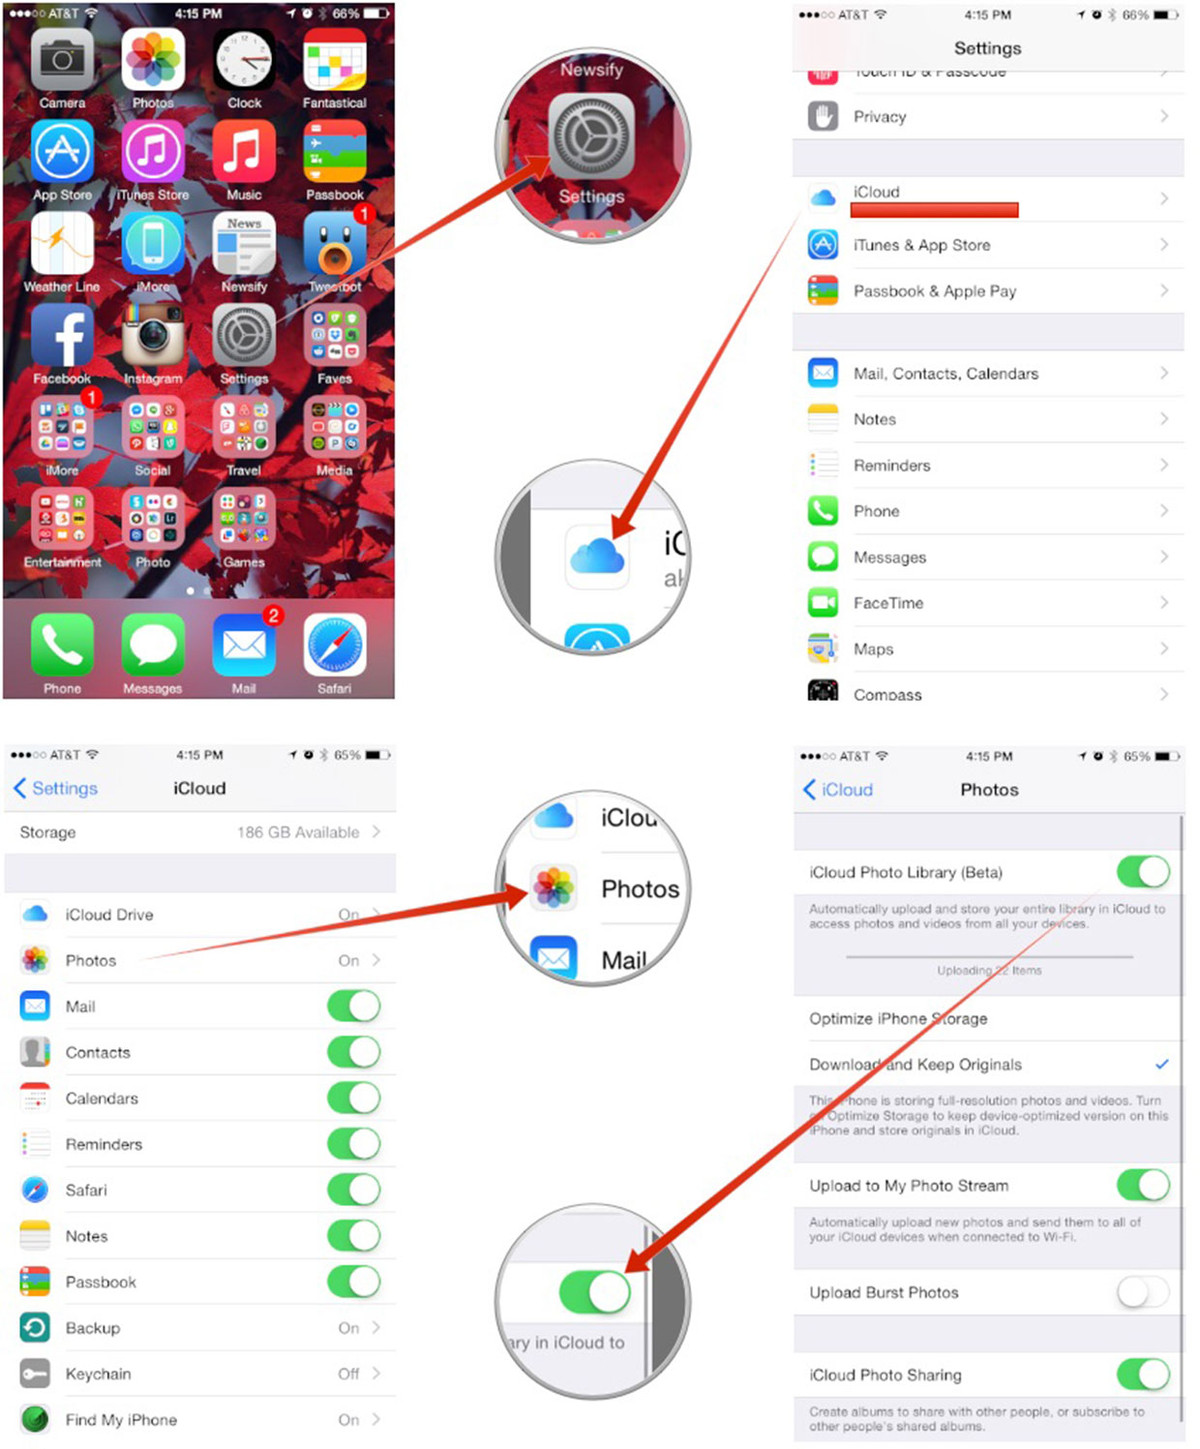 icloud_photo_library_enable_howto